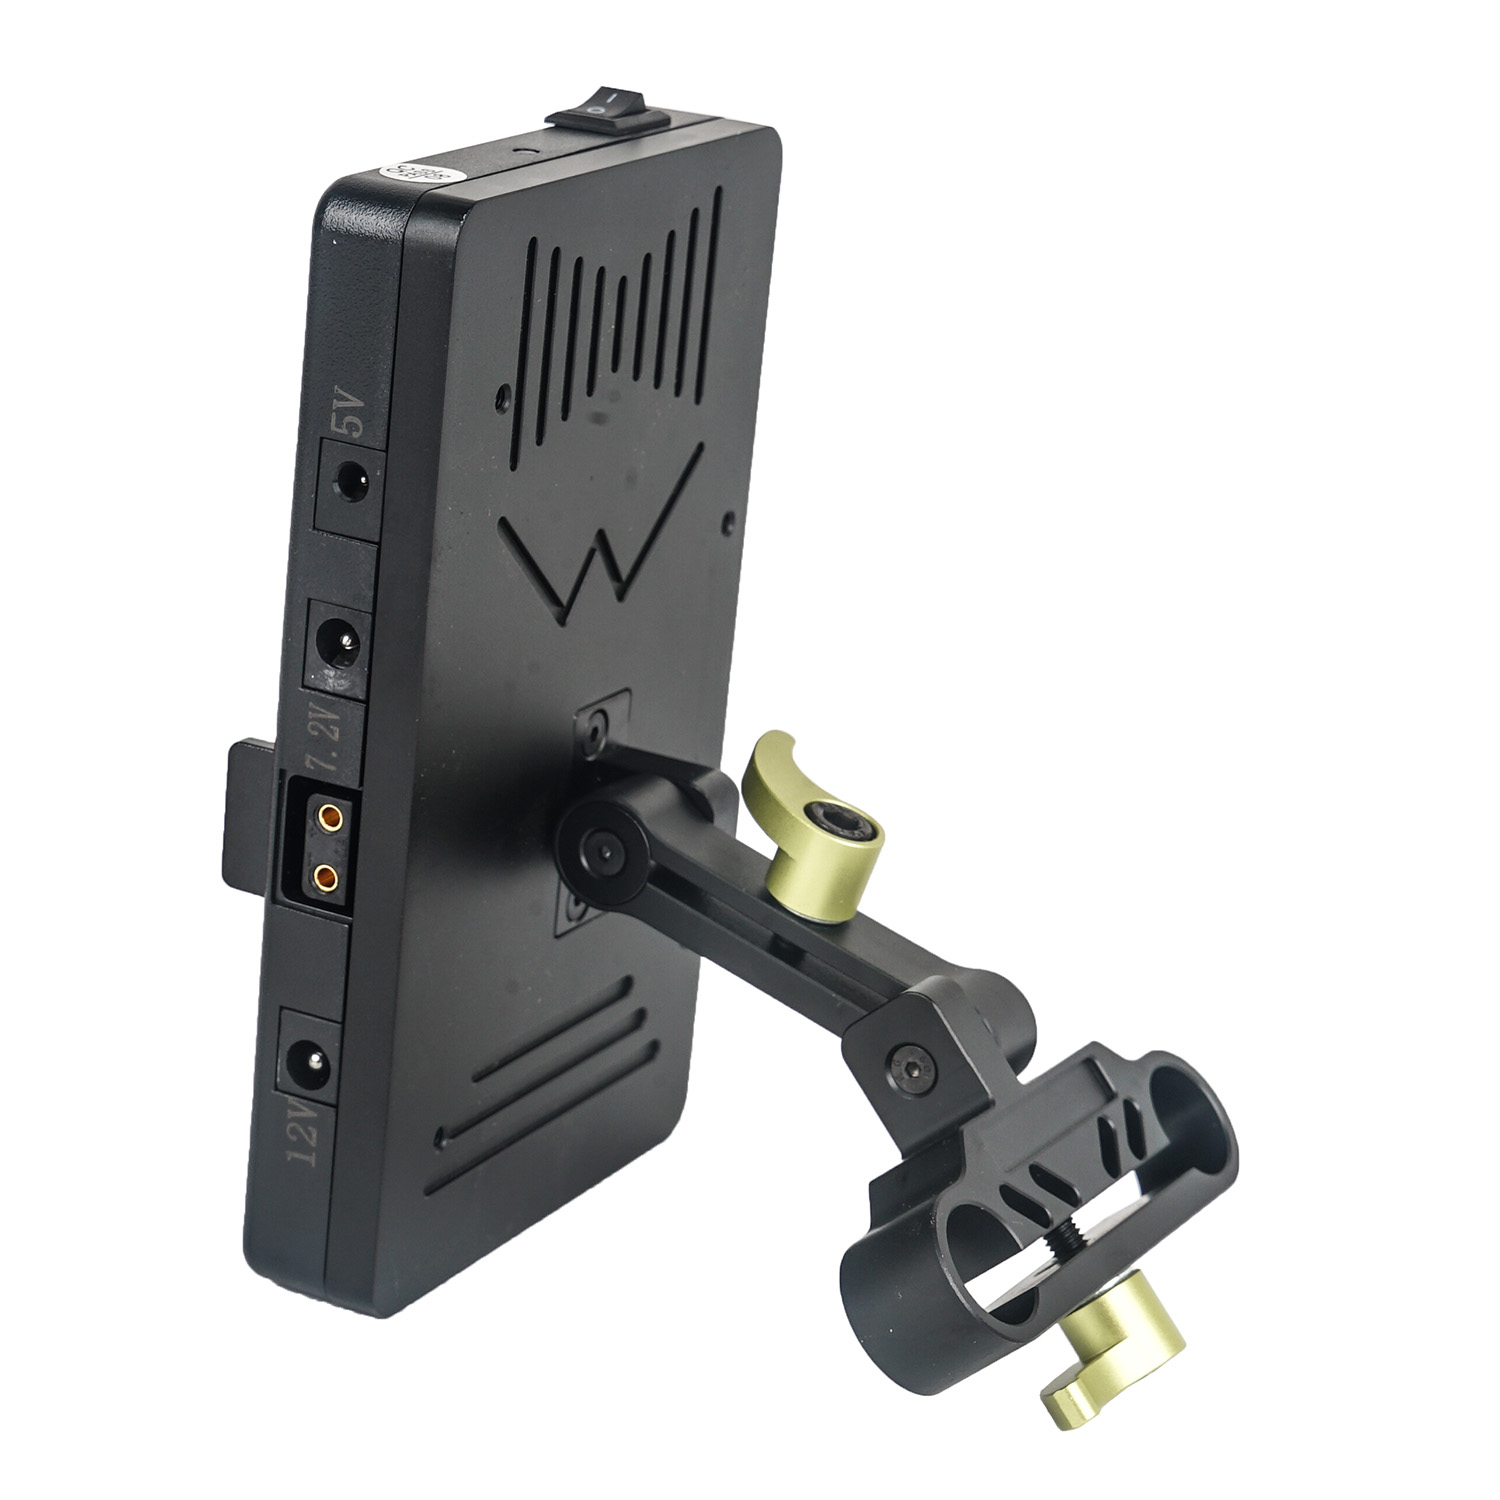 CAME TV V mount Battery Plate Include Connection Cable 5V 7.2V 12V-in Photo Studio Accessories from Consumer Electronics